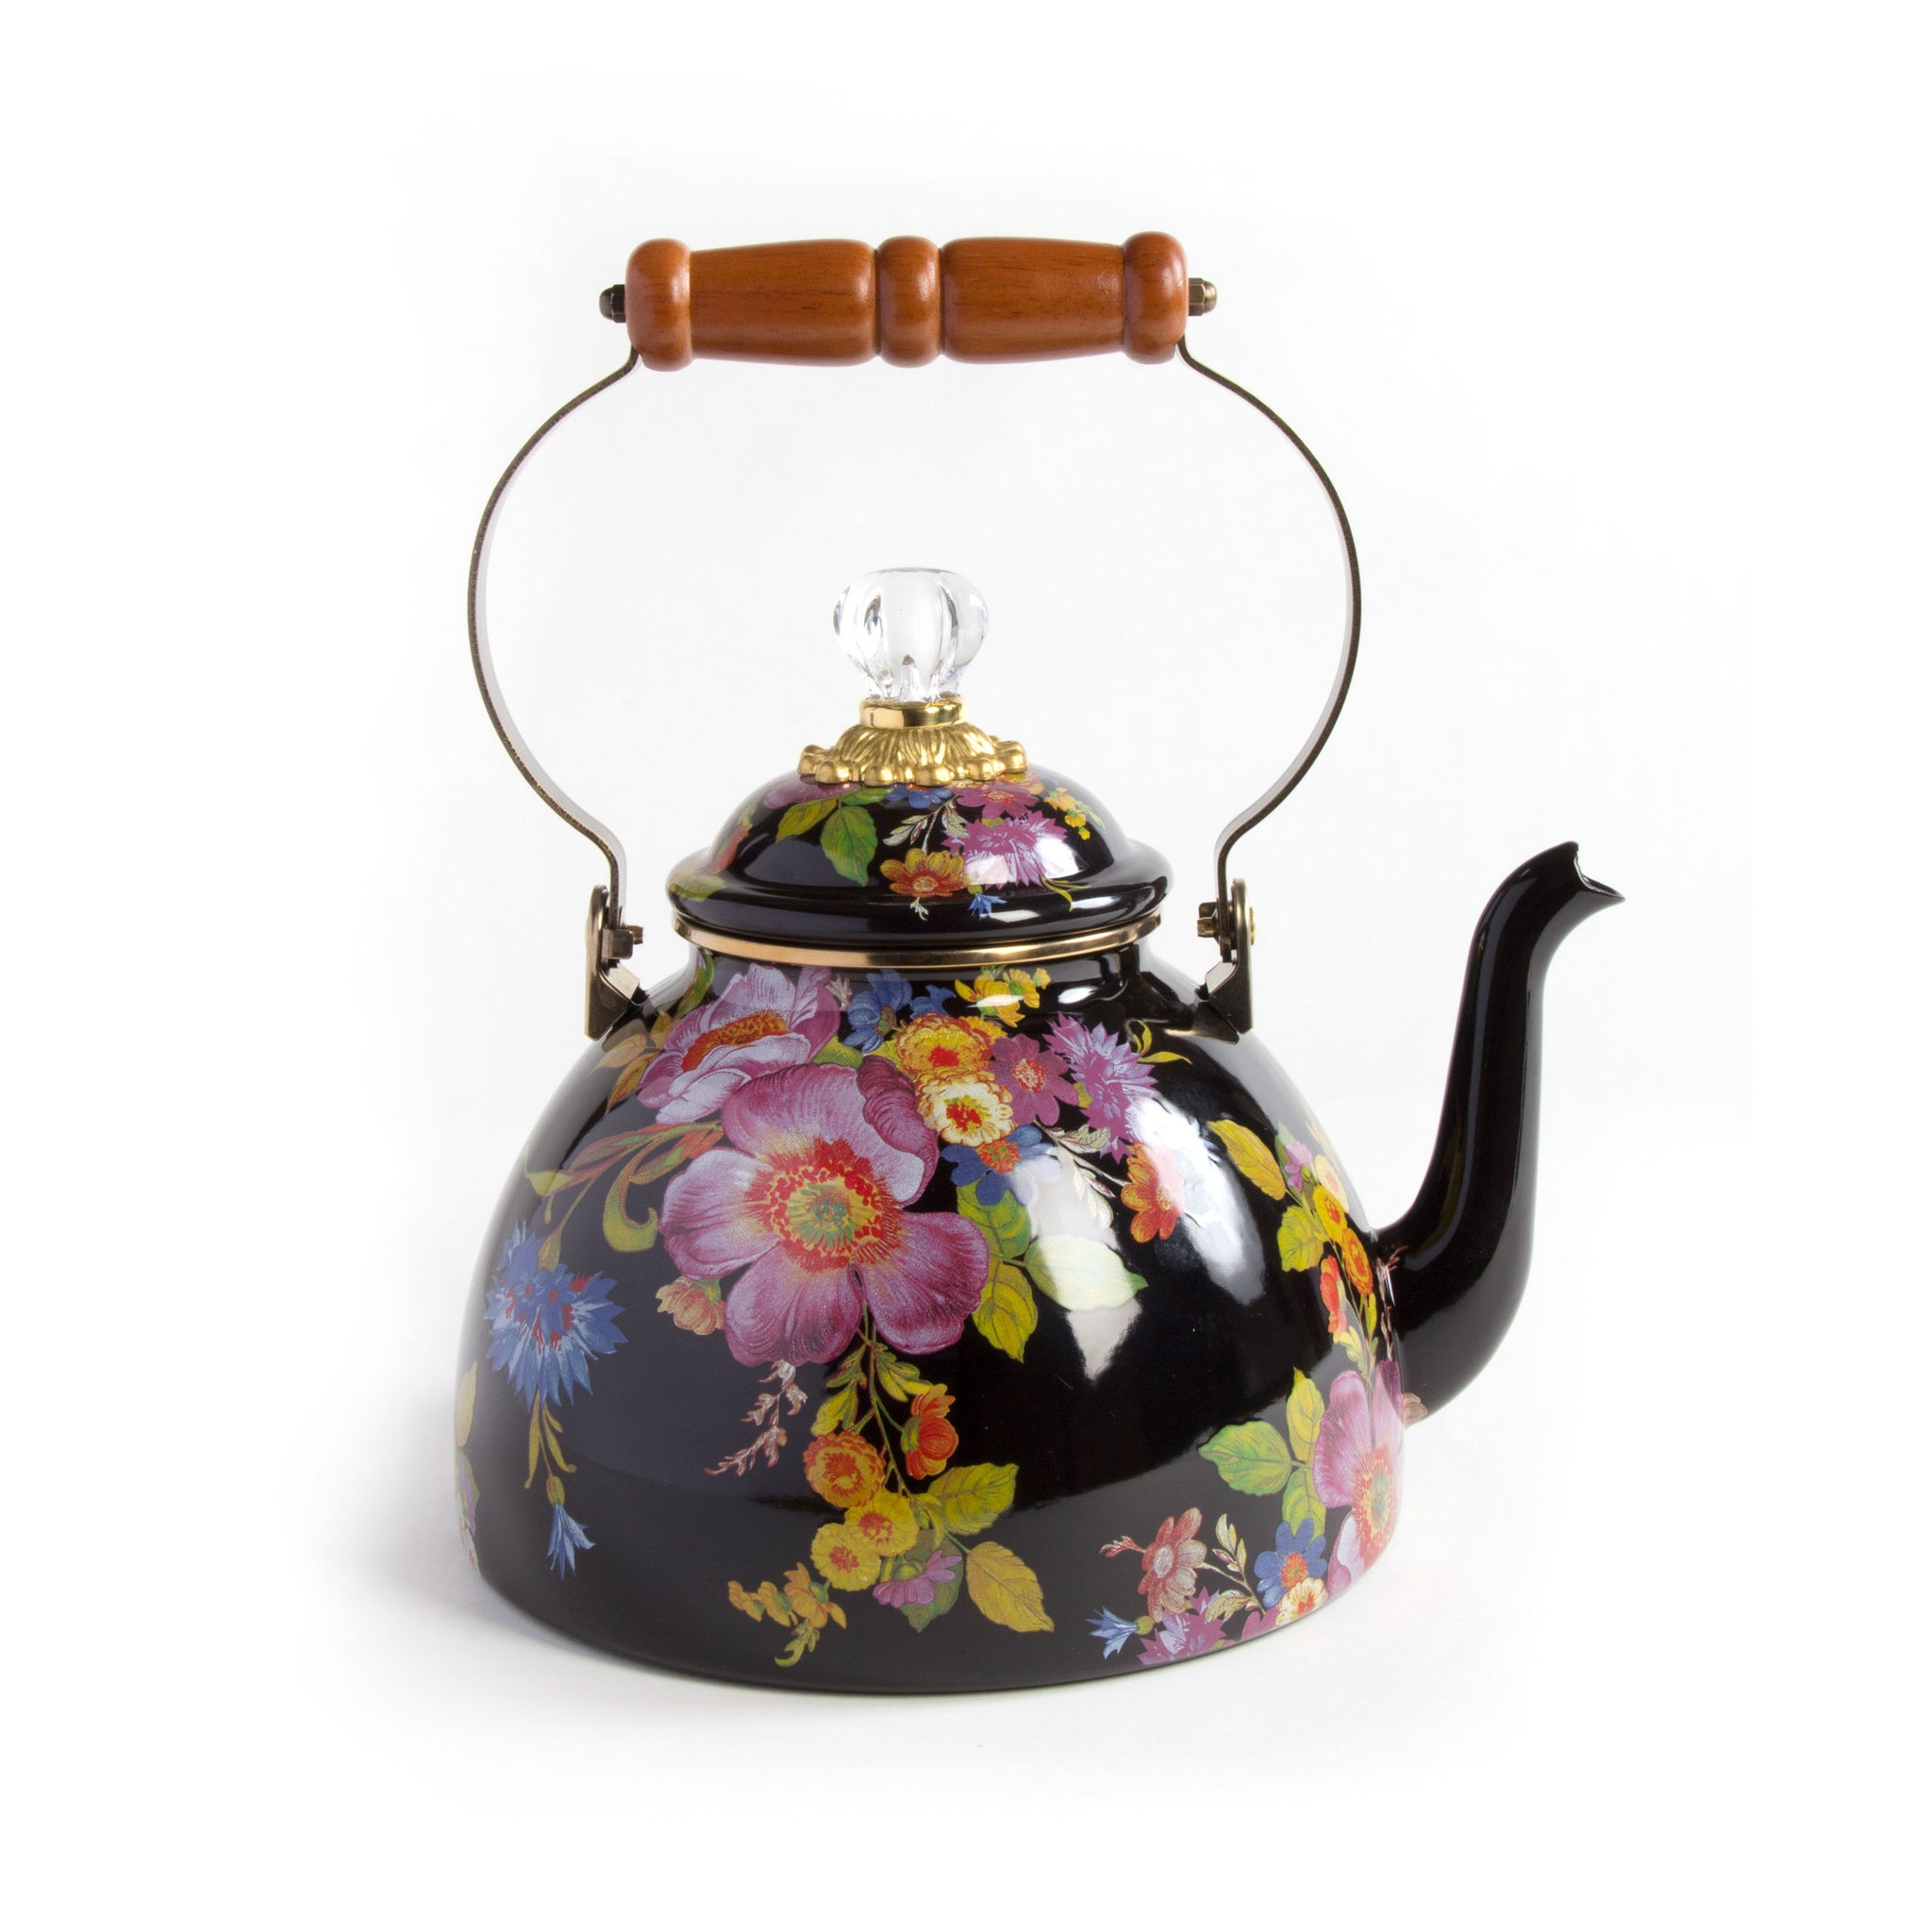 Tea Kettle - 3 Quart